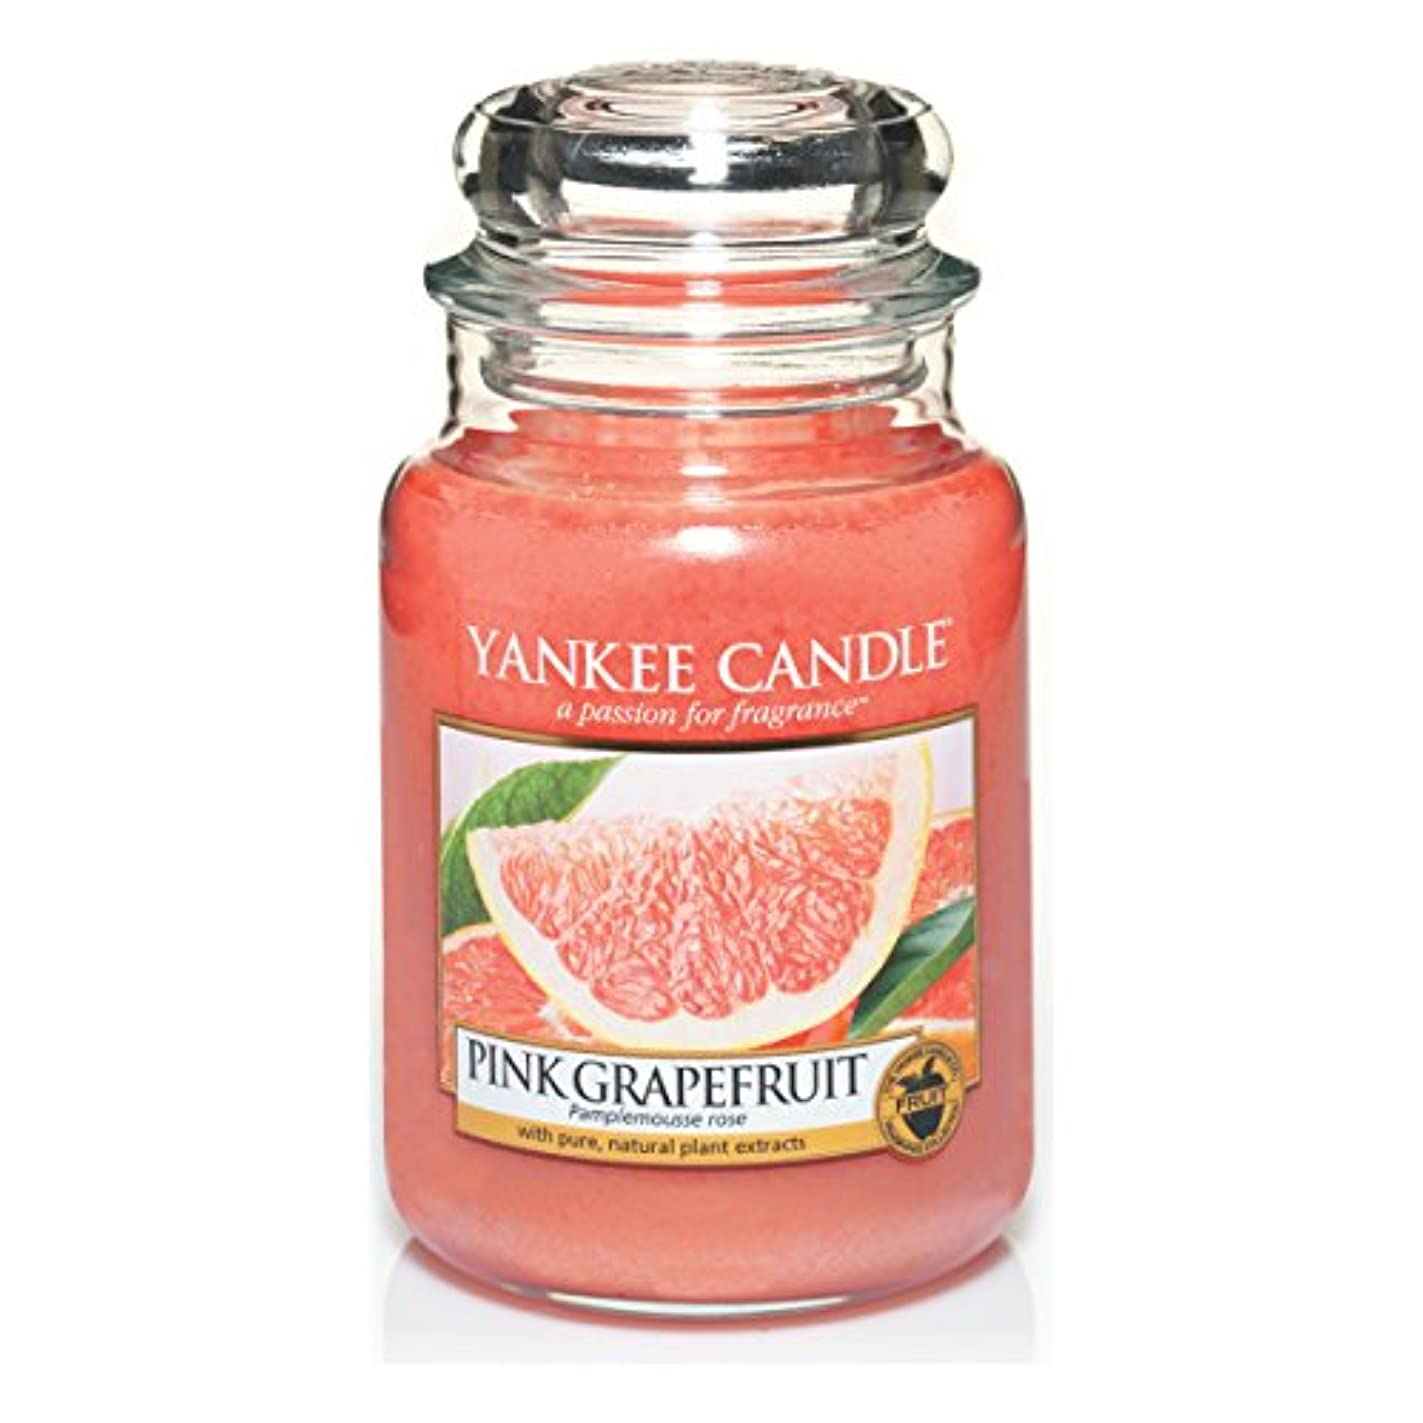 Yankee Candle Large Jar Candle, Pink Grapefruit by Yankee Candle